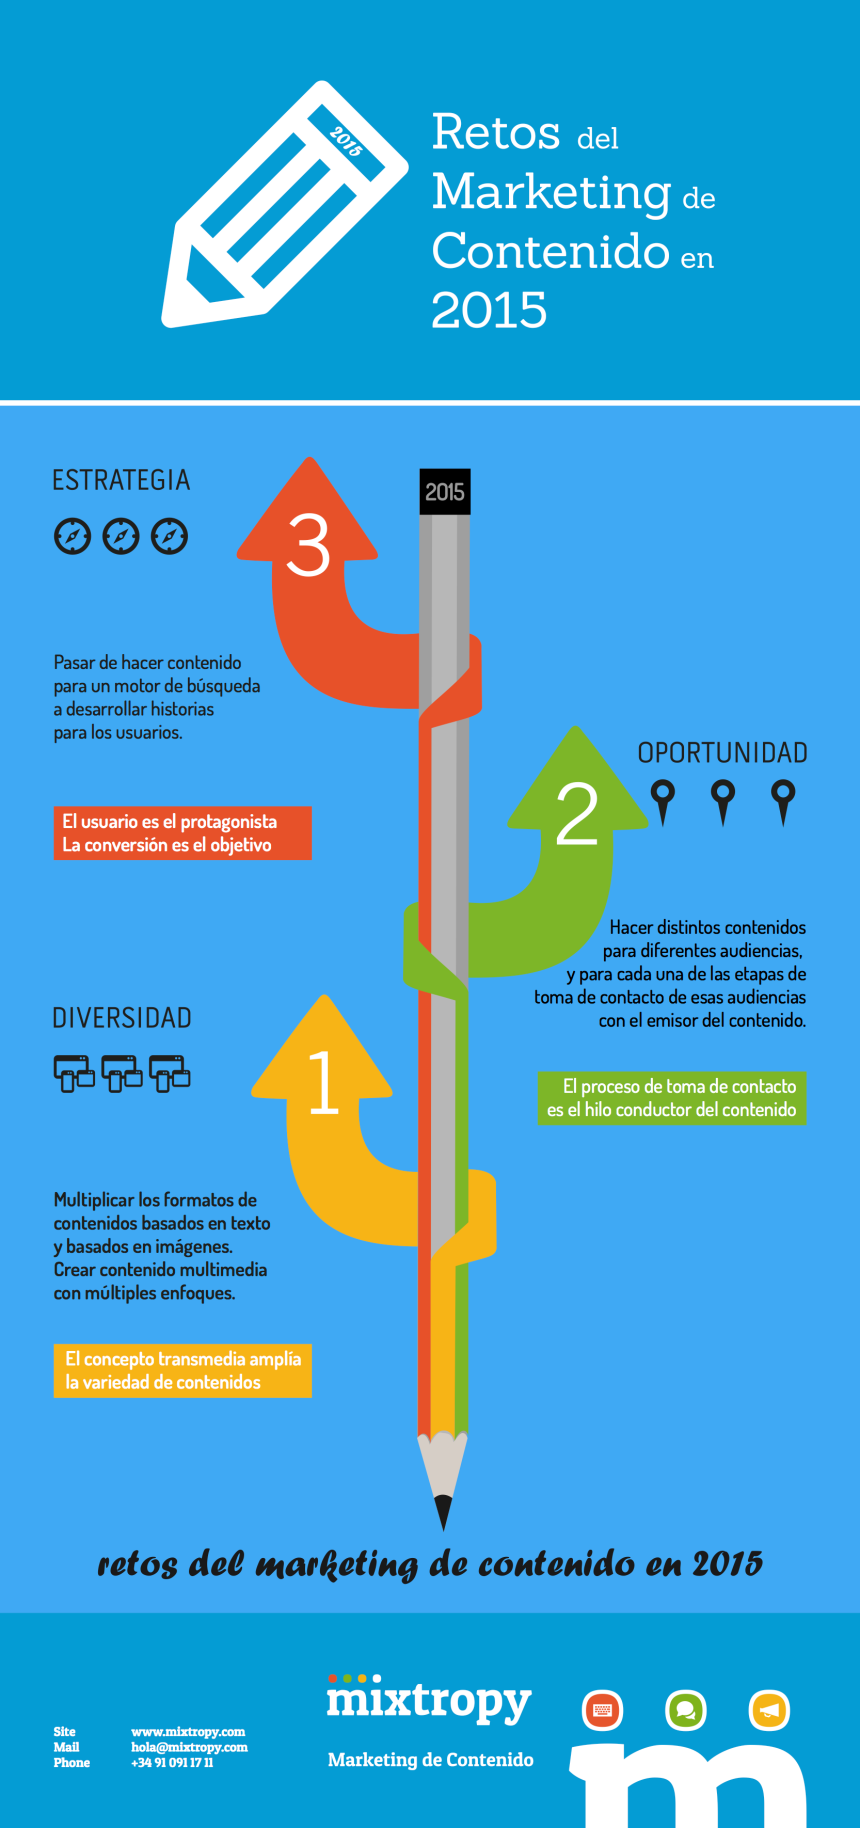 Retos del marketing de contenido para 2015